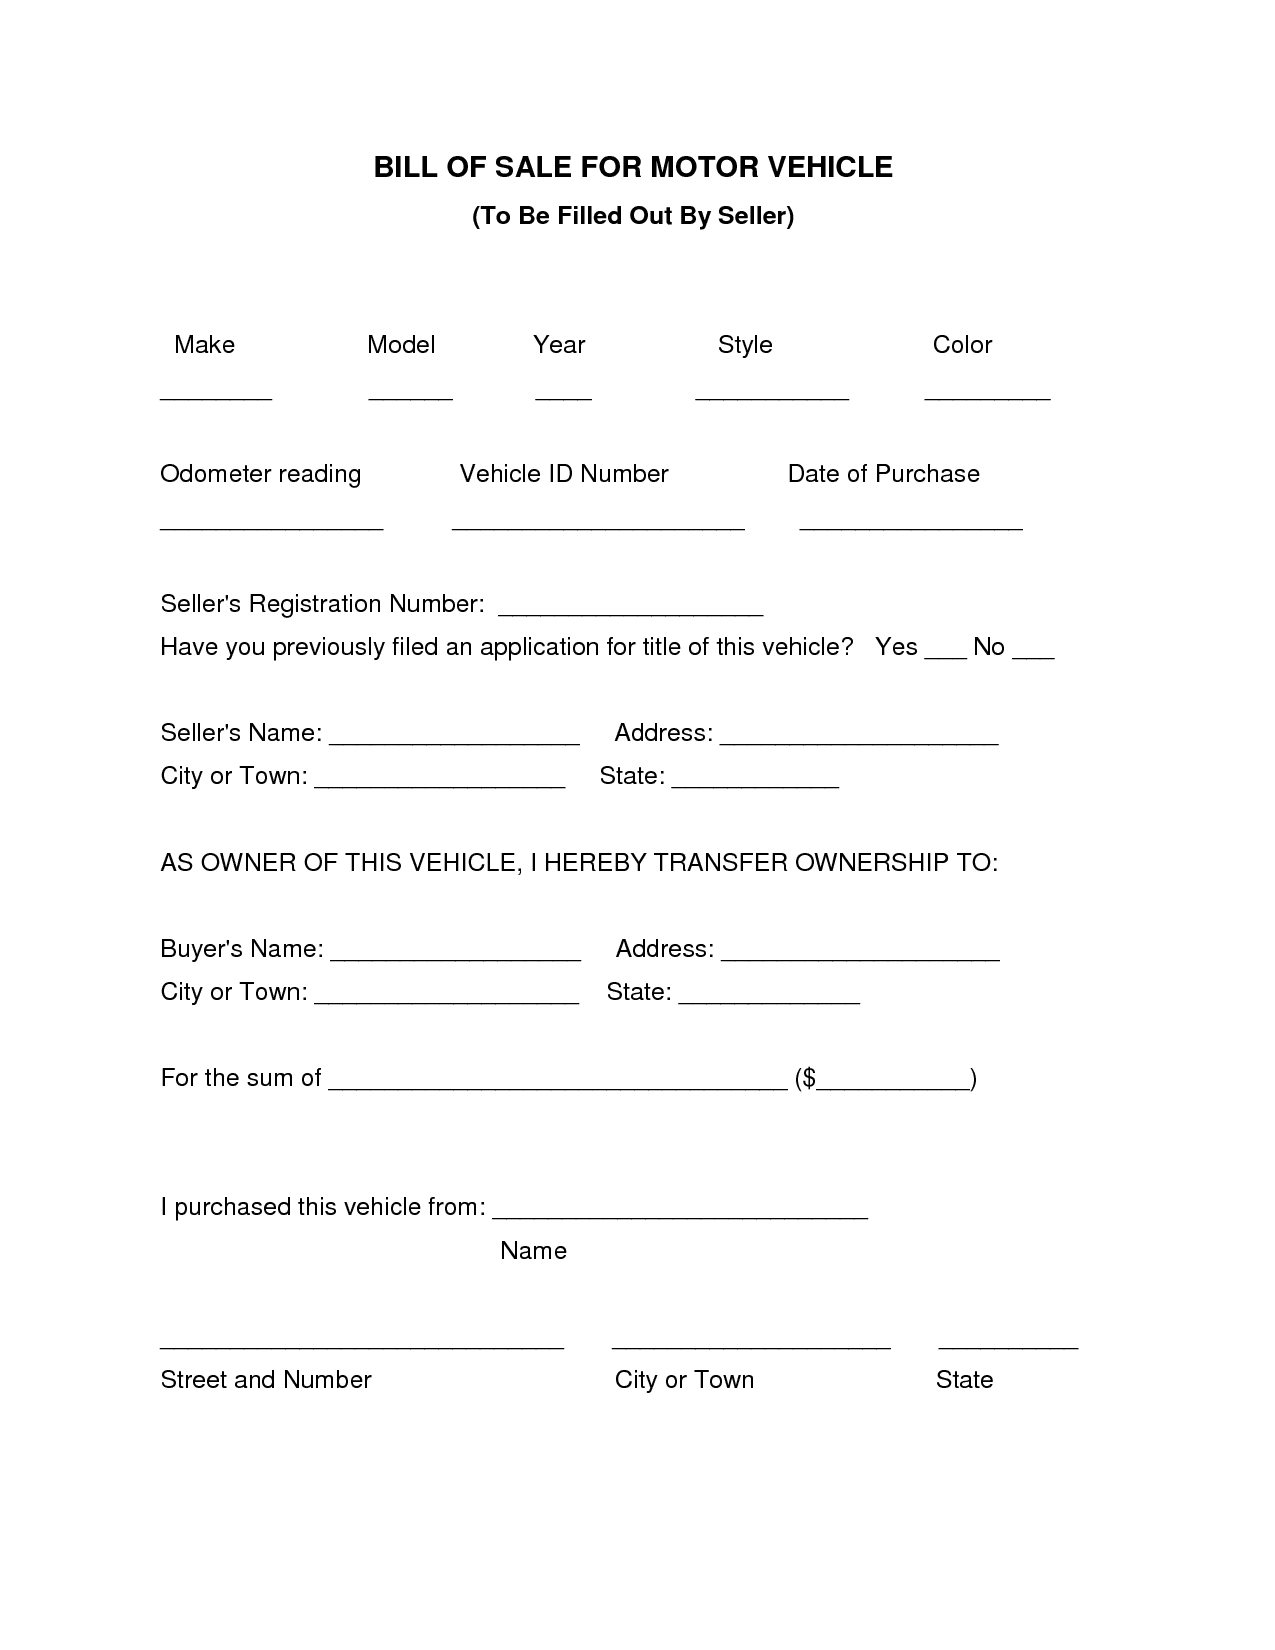 Free Printable Texas Bill Of Sale Form And Blank Bill Of Sale